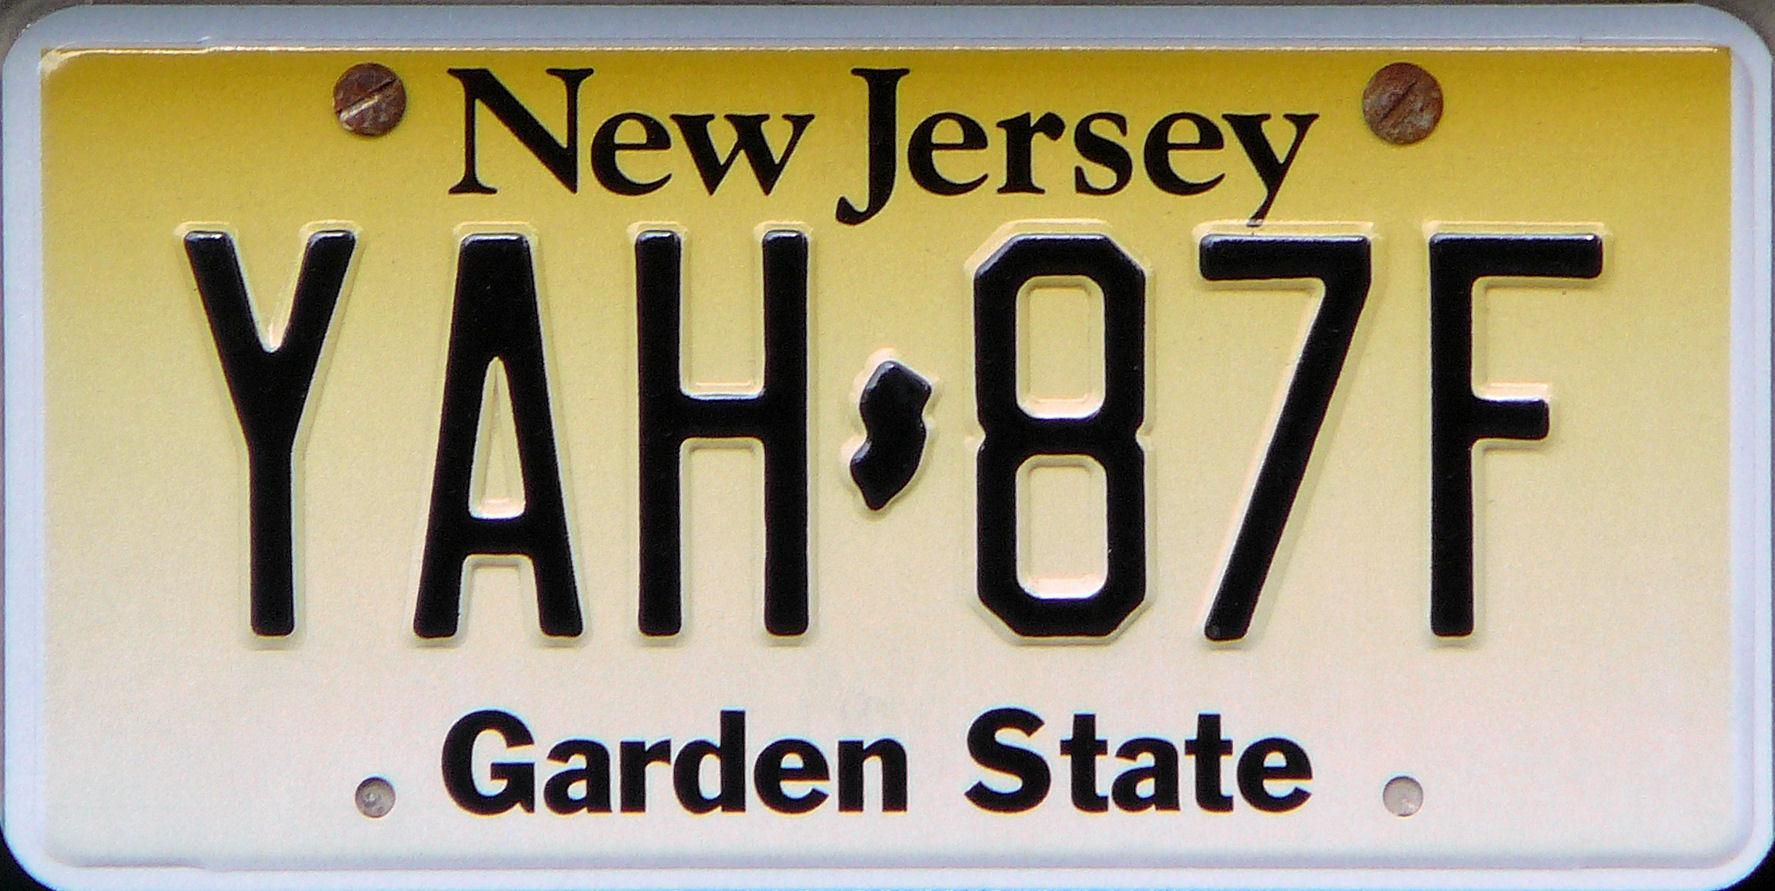 New Jersey Garden State New Jersey Jersey New Drivers